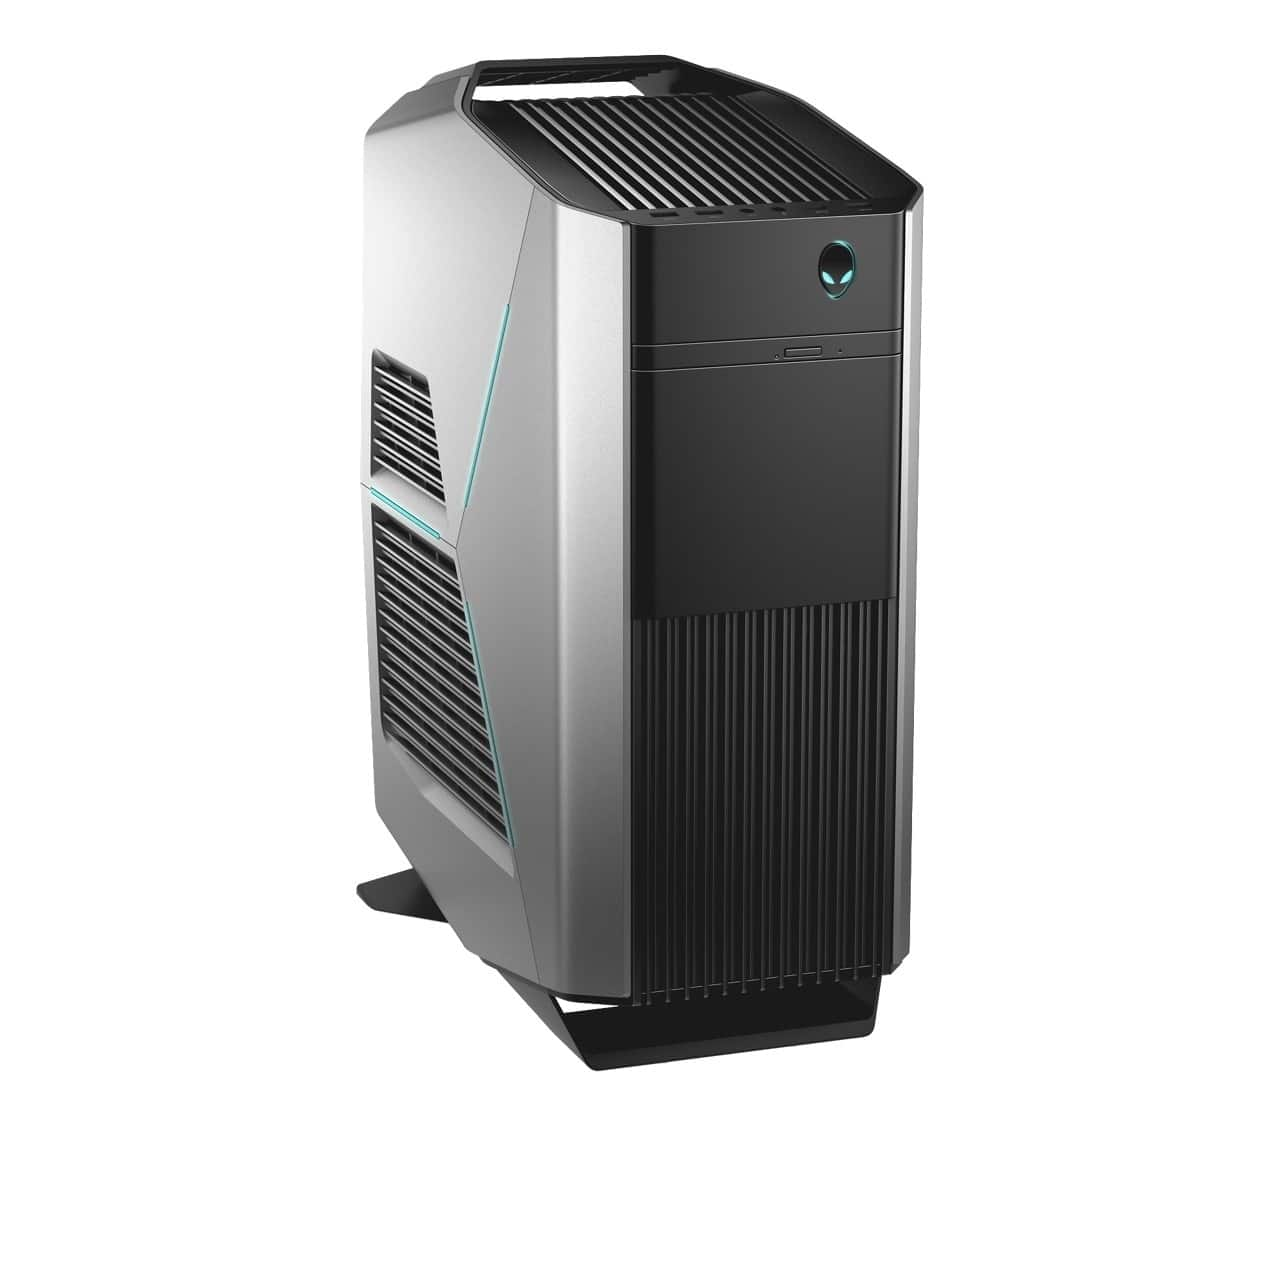 New-Dell Alienware Aurora R7: i7 8700, 16GB DDR4 ,256G SSD, 2TB HDD, GTX 1070 (or 1080 for $1083 without 256G SSD), 460W PSU, Win10H @$969